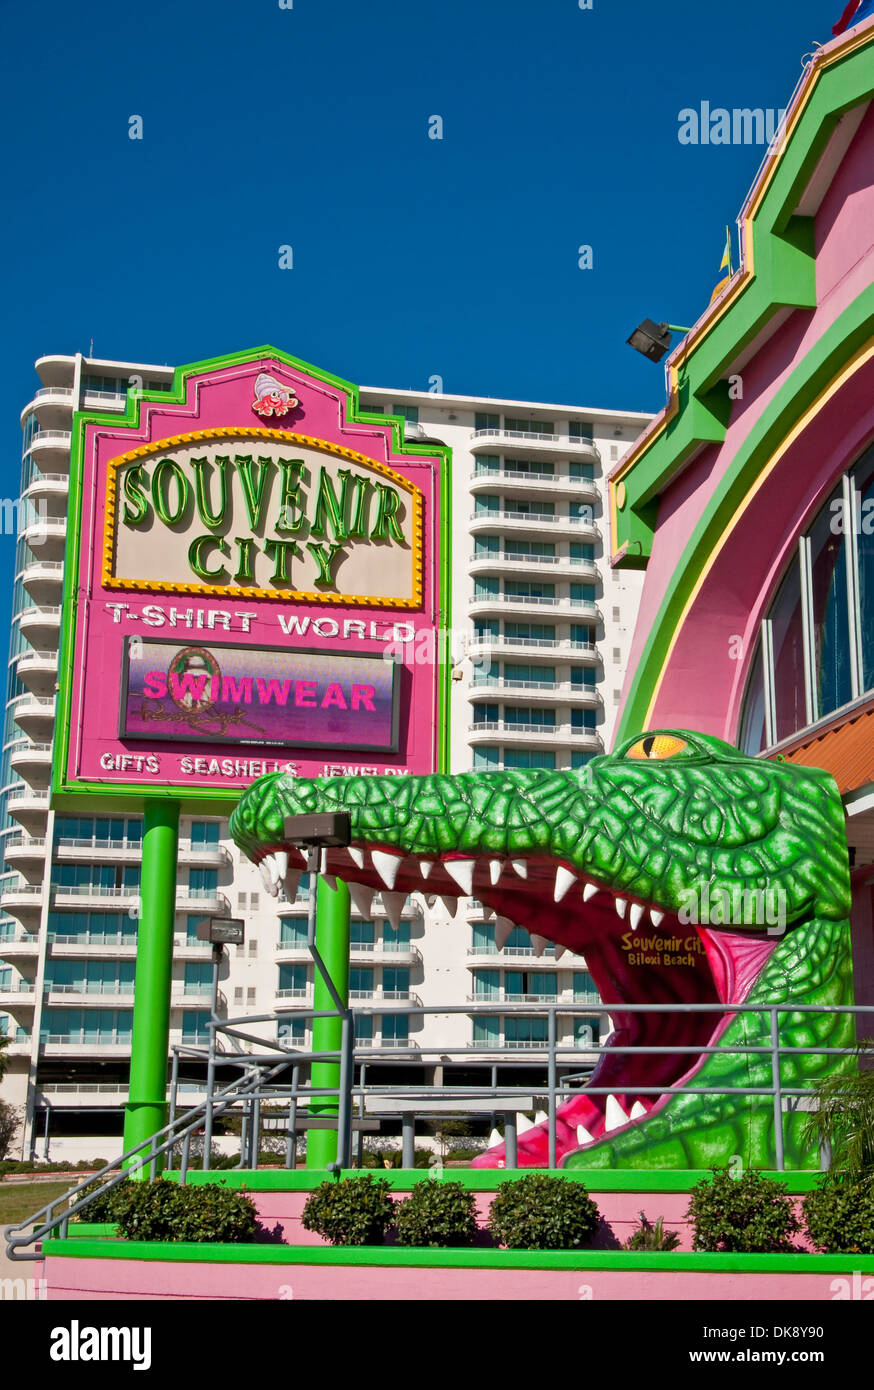 Alligator entrance and sign for Souvenir City T-shirt World at Biloxi Beach on Mississippi Sound of Gulf Coast. - Stock Image